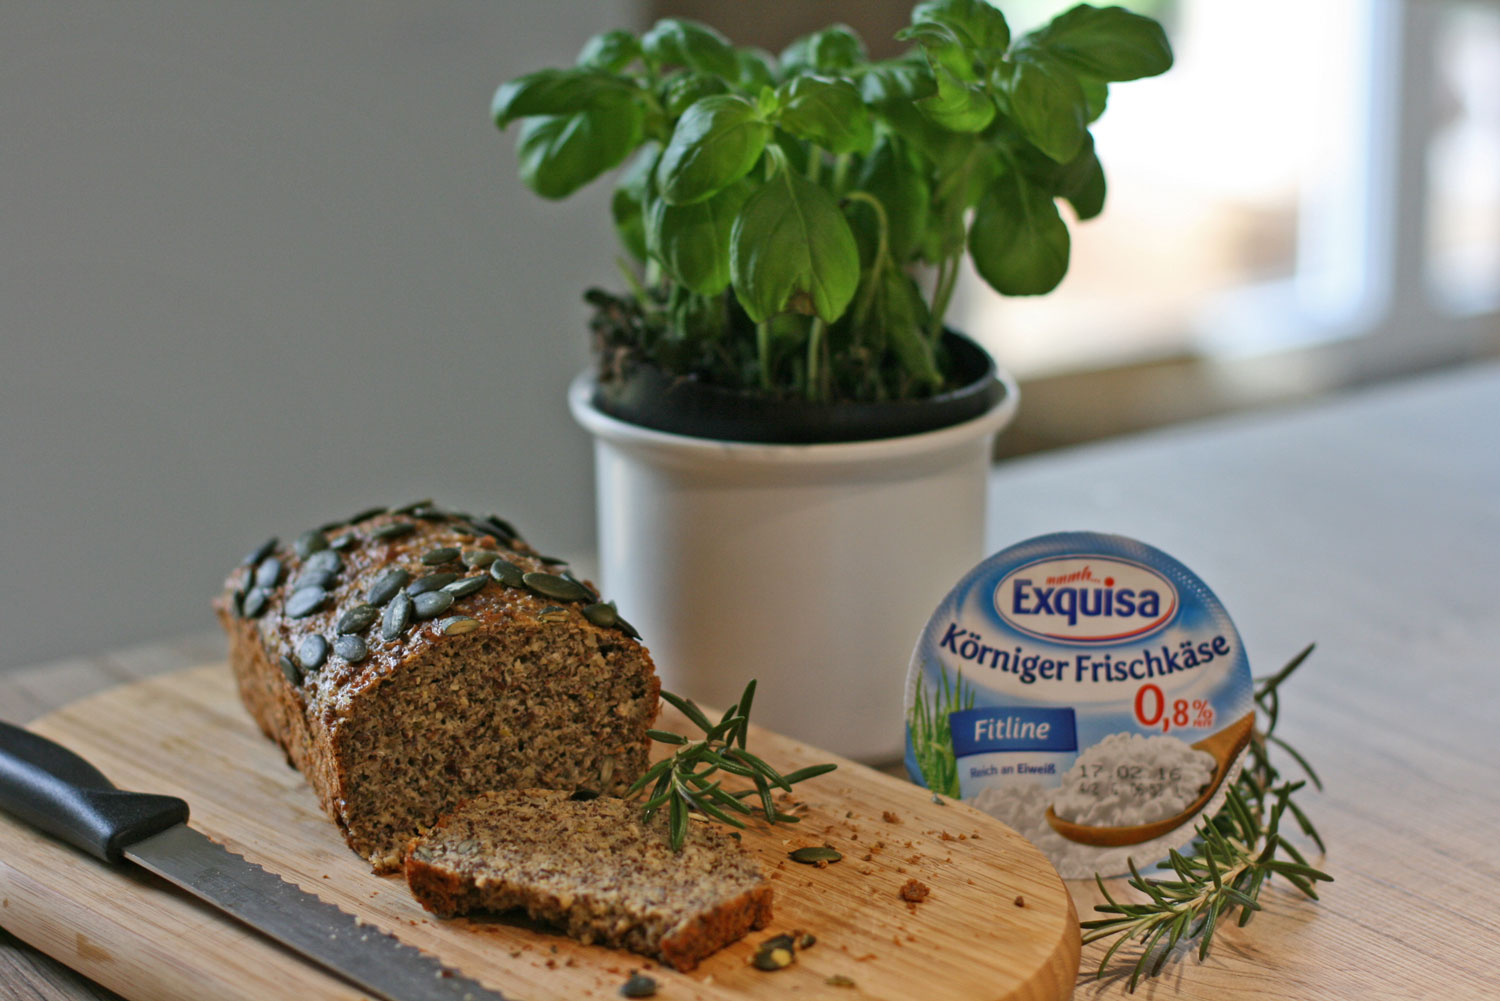 Clean-Eating-Eiweißbrot-Exquisa-Körniger-Frischkäse